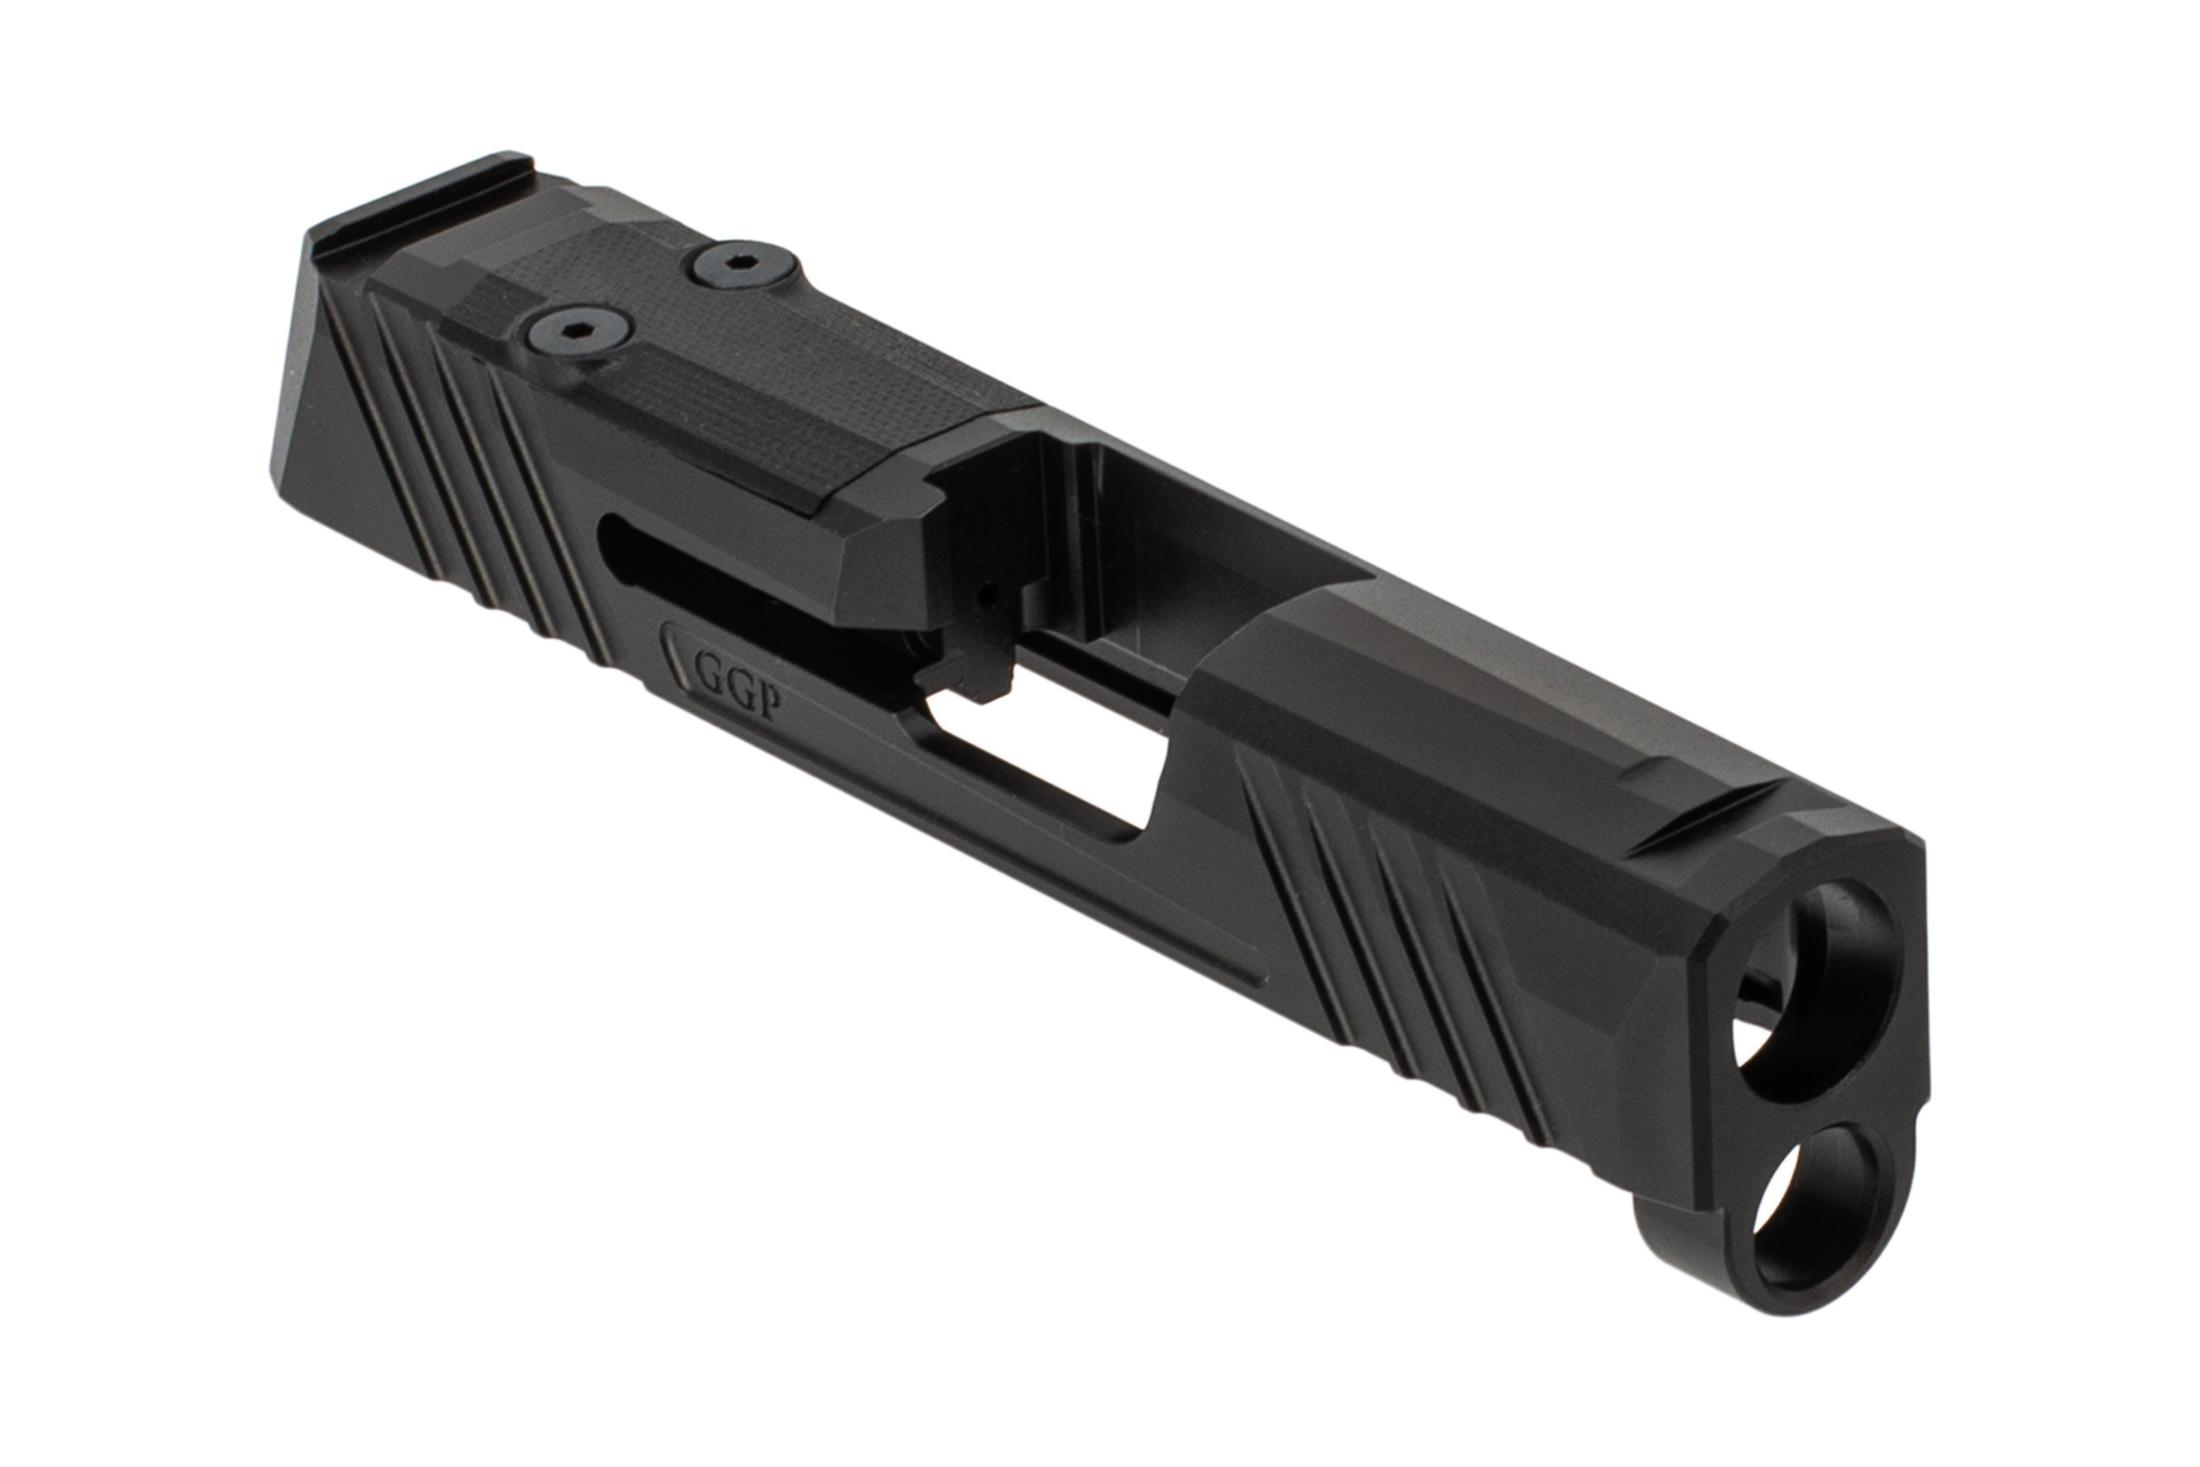 Grey Ghost Precision SIG P365 V1 Slide features a black DLC finish